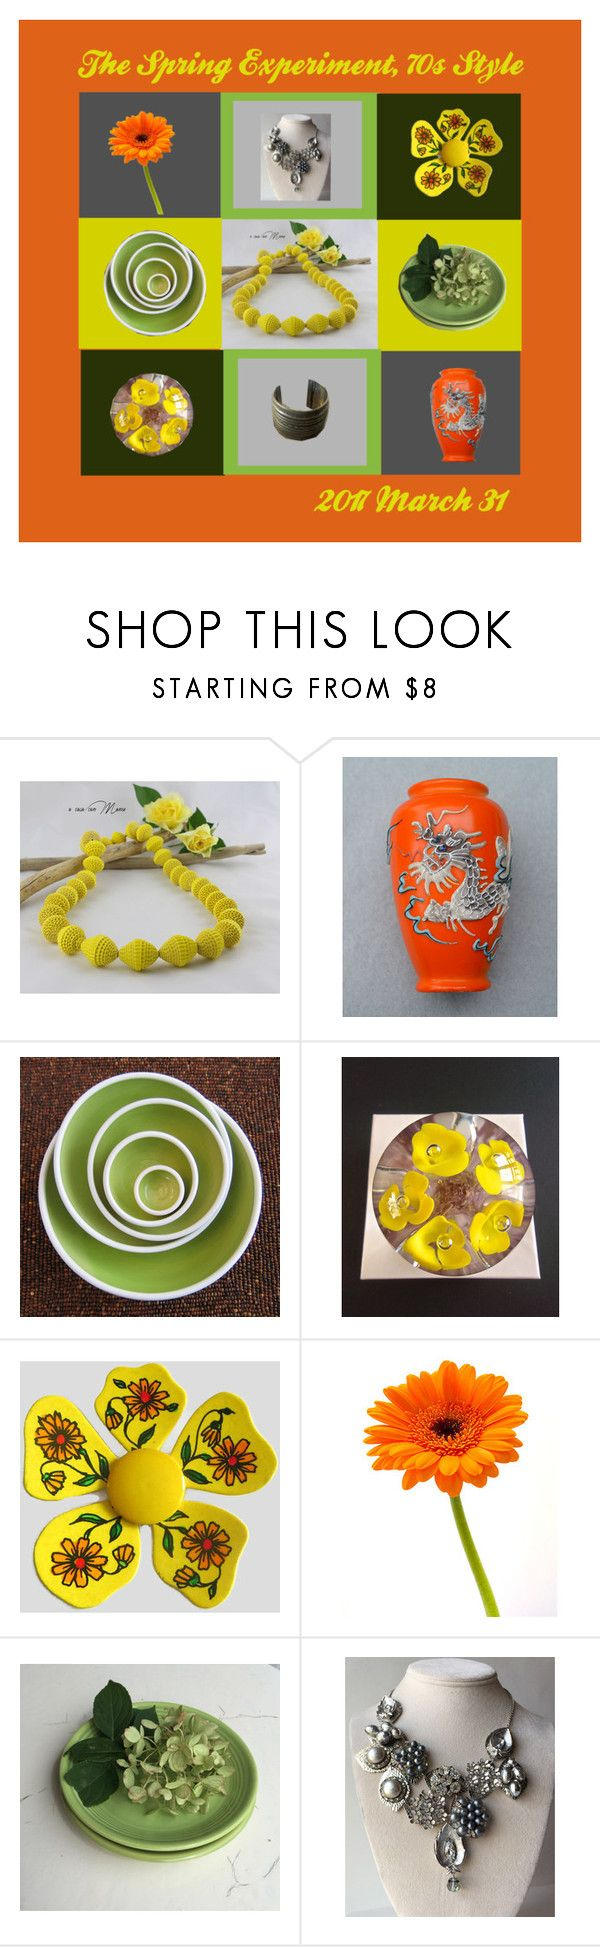 """""""The Spring Experiment, 70s Style"""" by anna-ragland ❤ liked on Polyvore featuring Giallo, Reclaimed Vintage, kitchen, contemporary and vintage"""